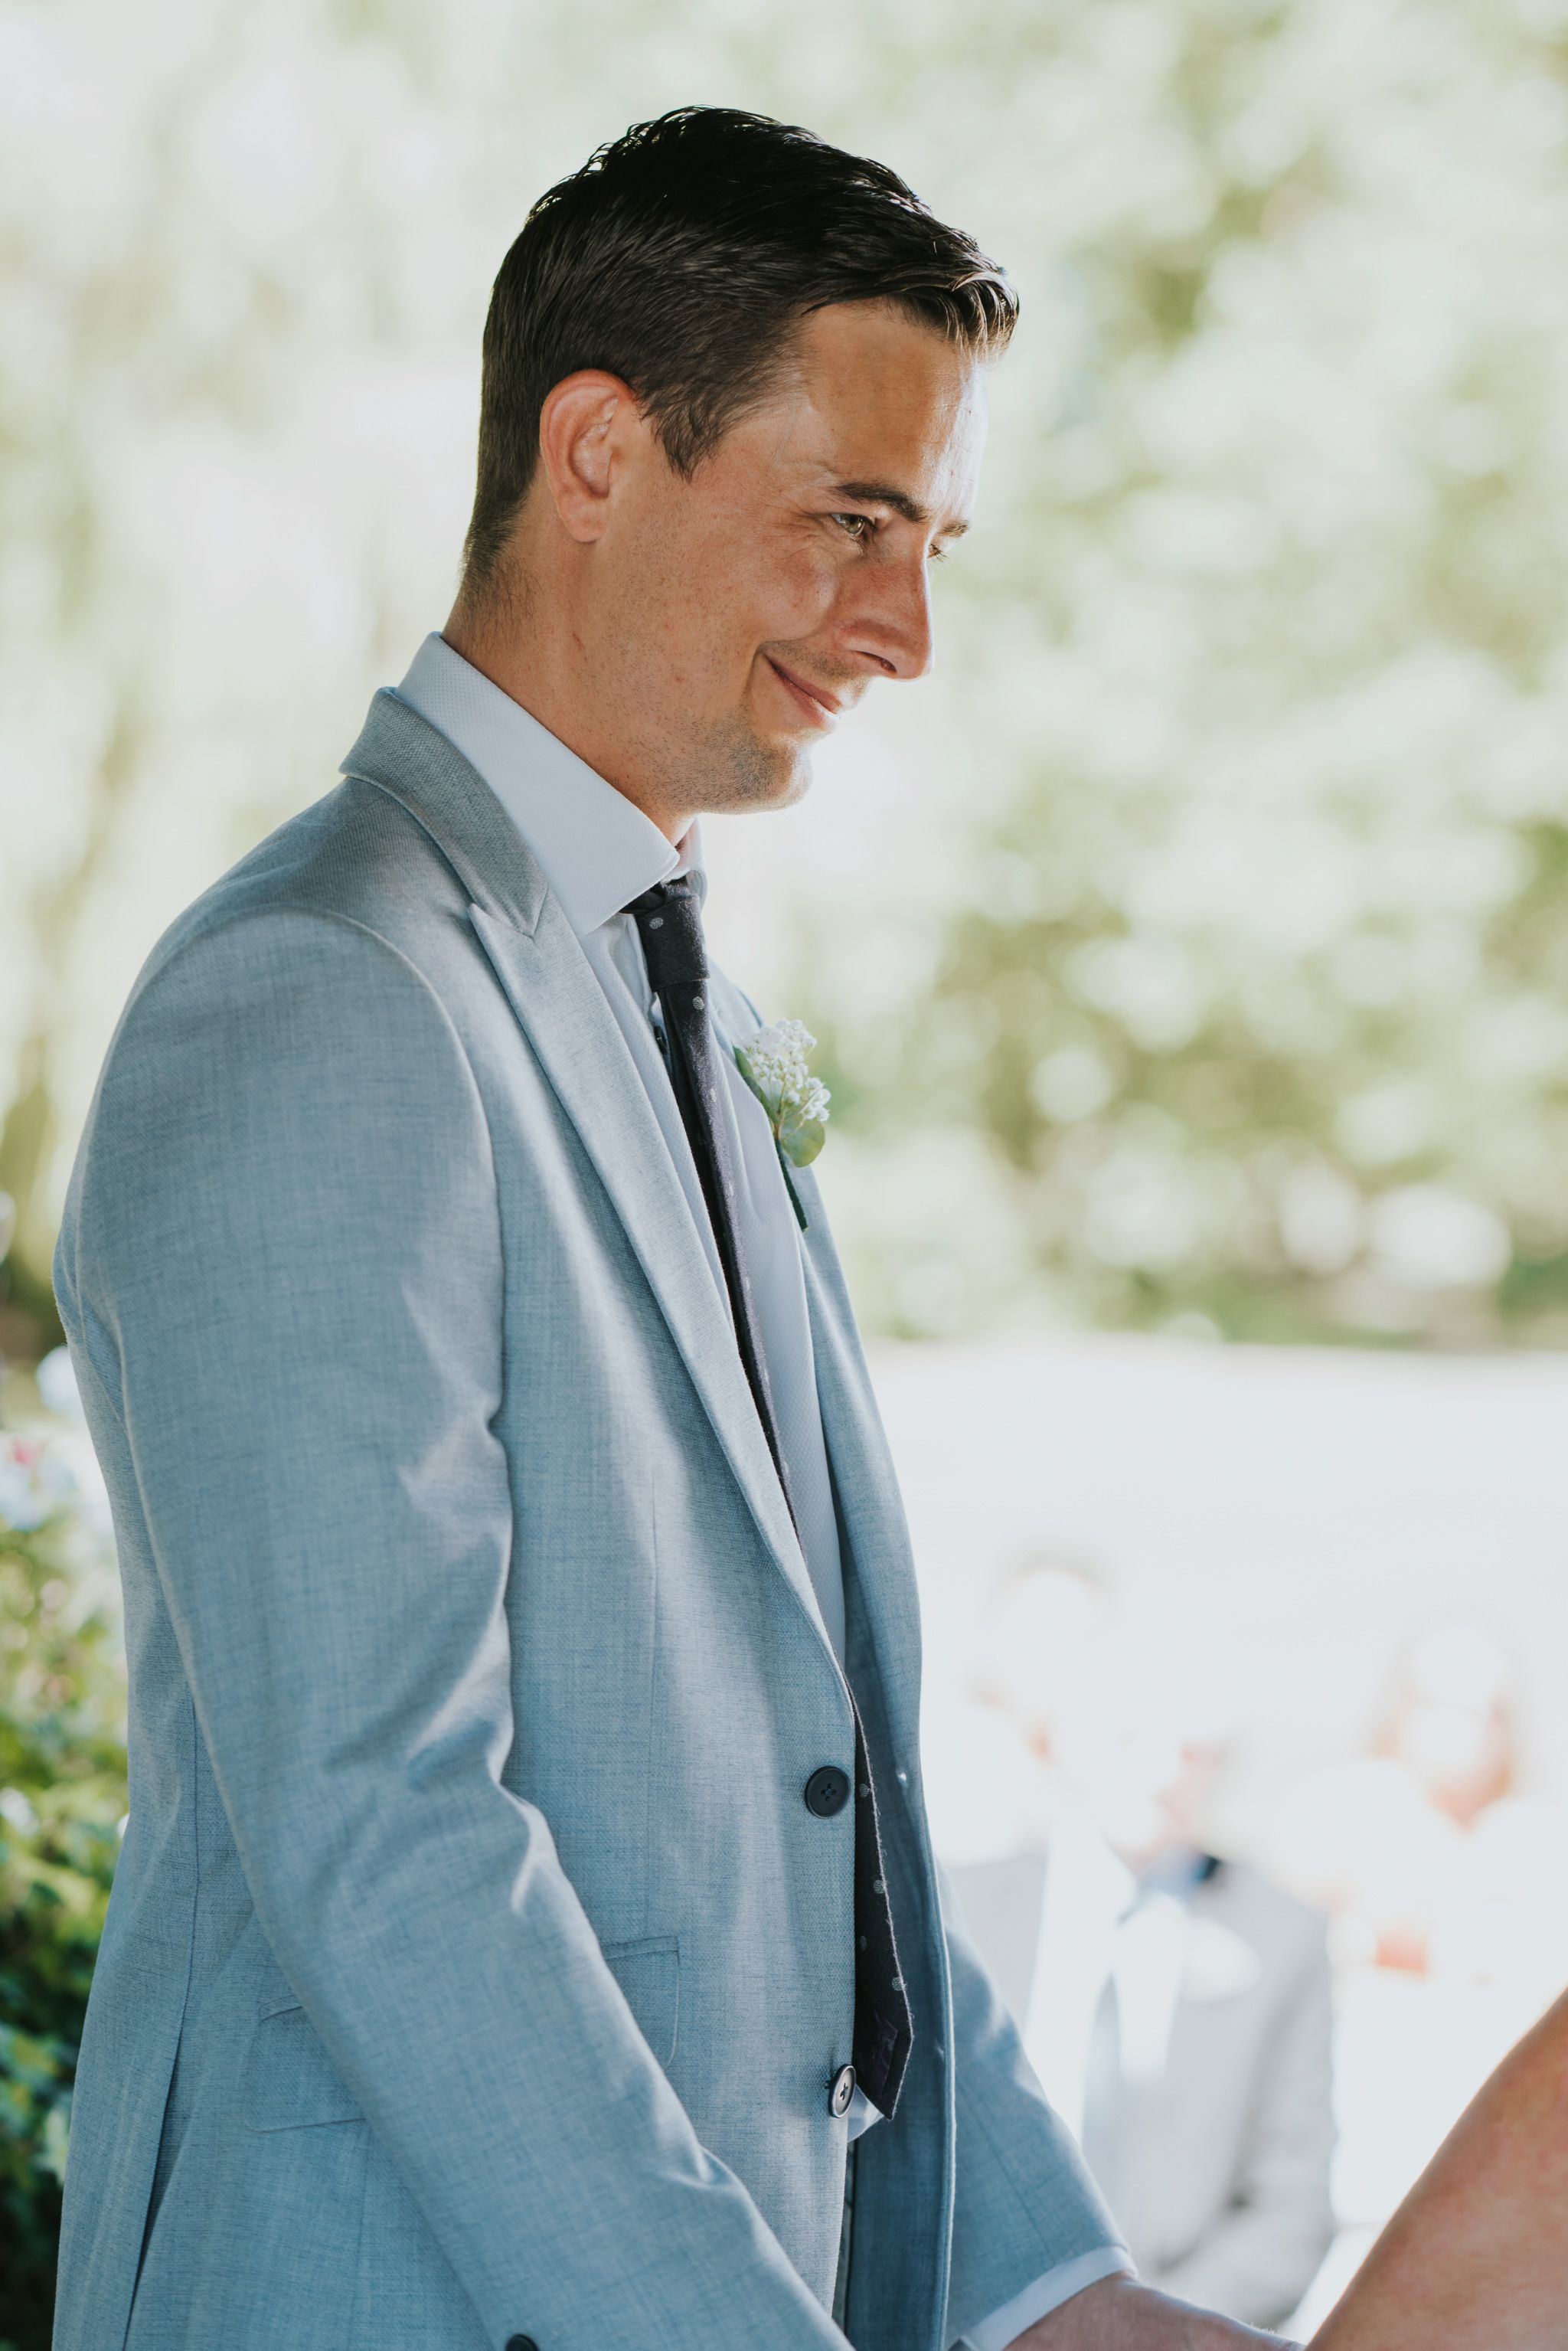 Natural photo of groomus during the vows at a relaxed outdoor boho